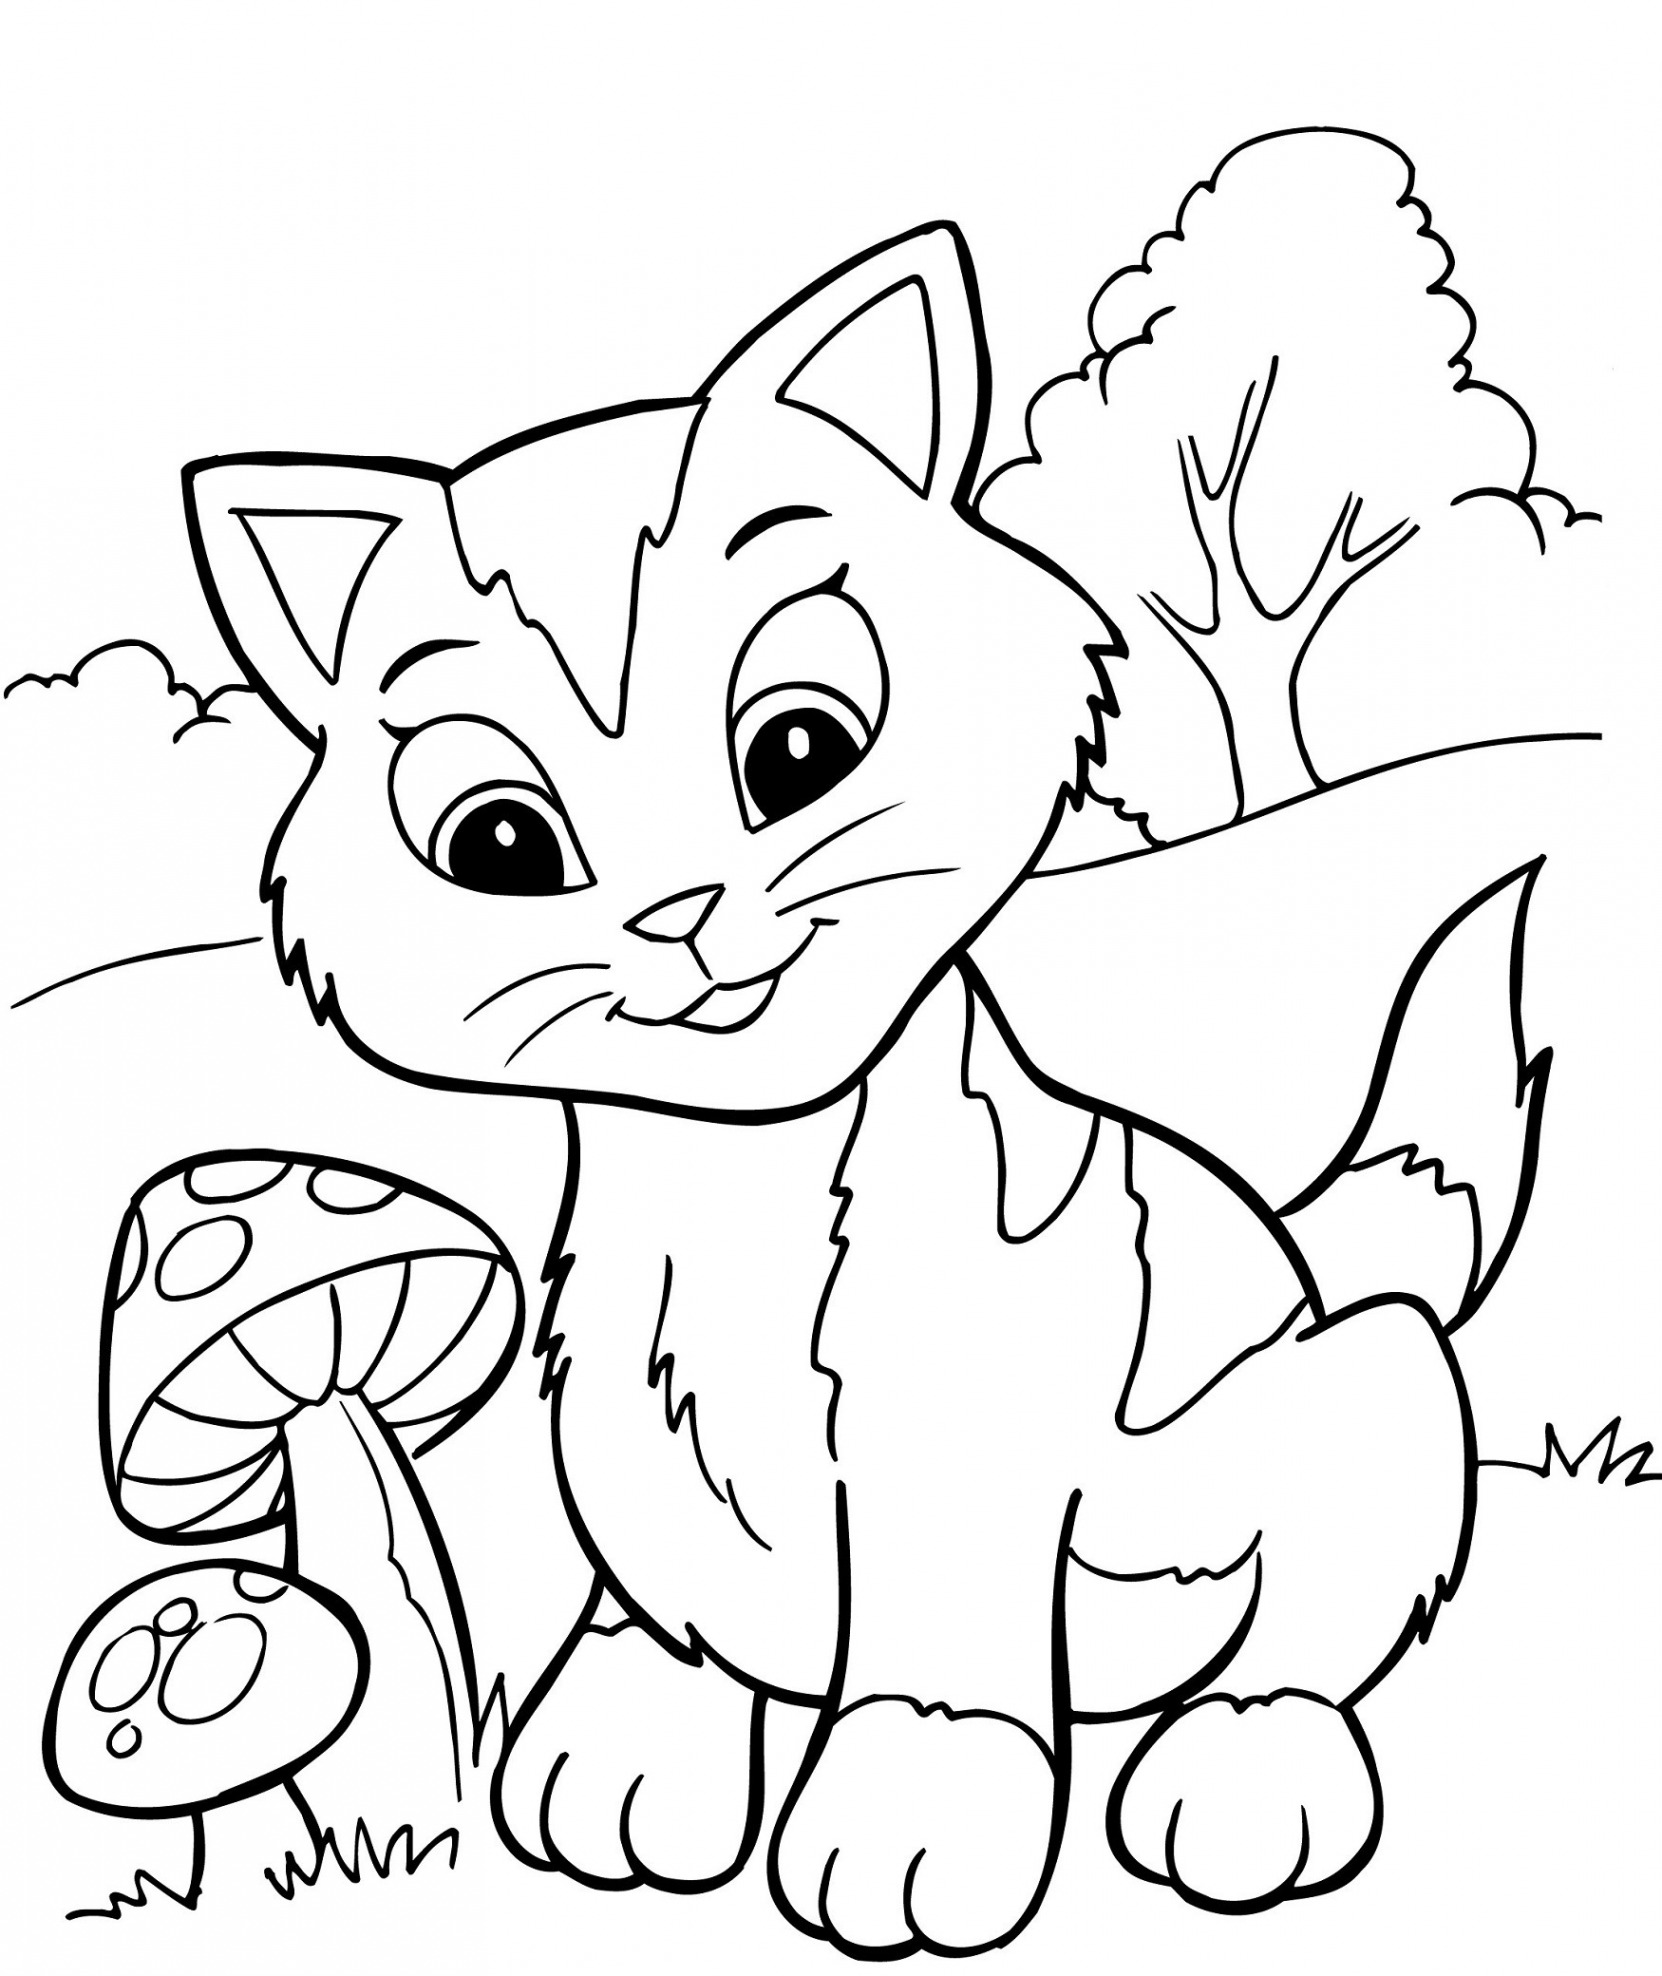 Christmas Kitten Coloring Pages With Kittens Printable Free